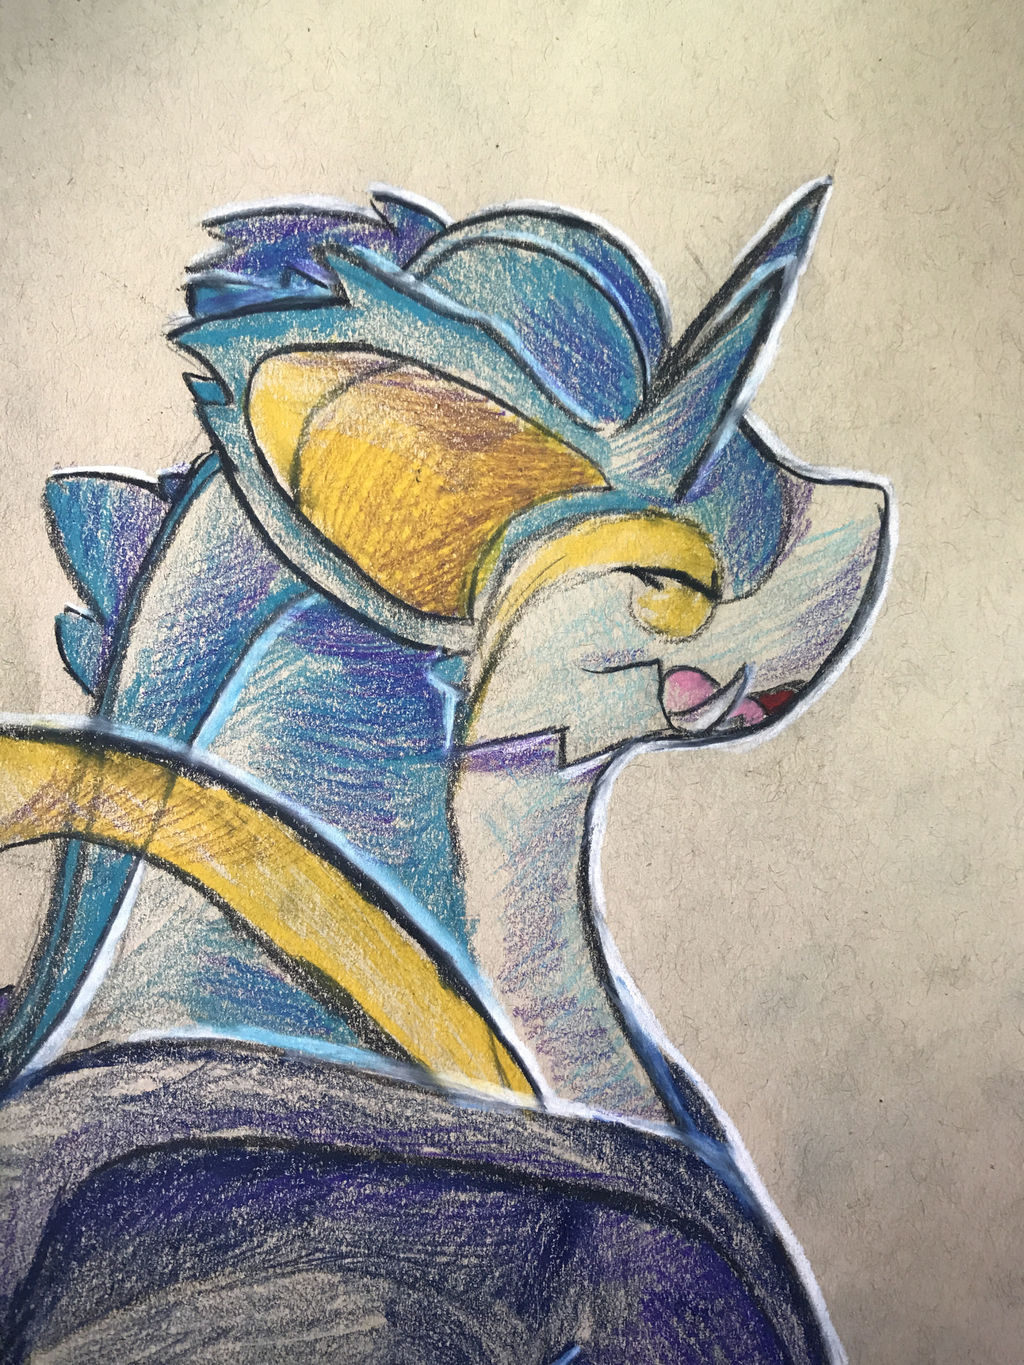 Snidraking - Colored Pencil